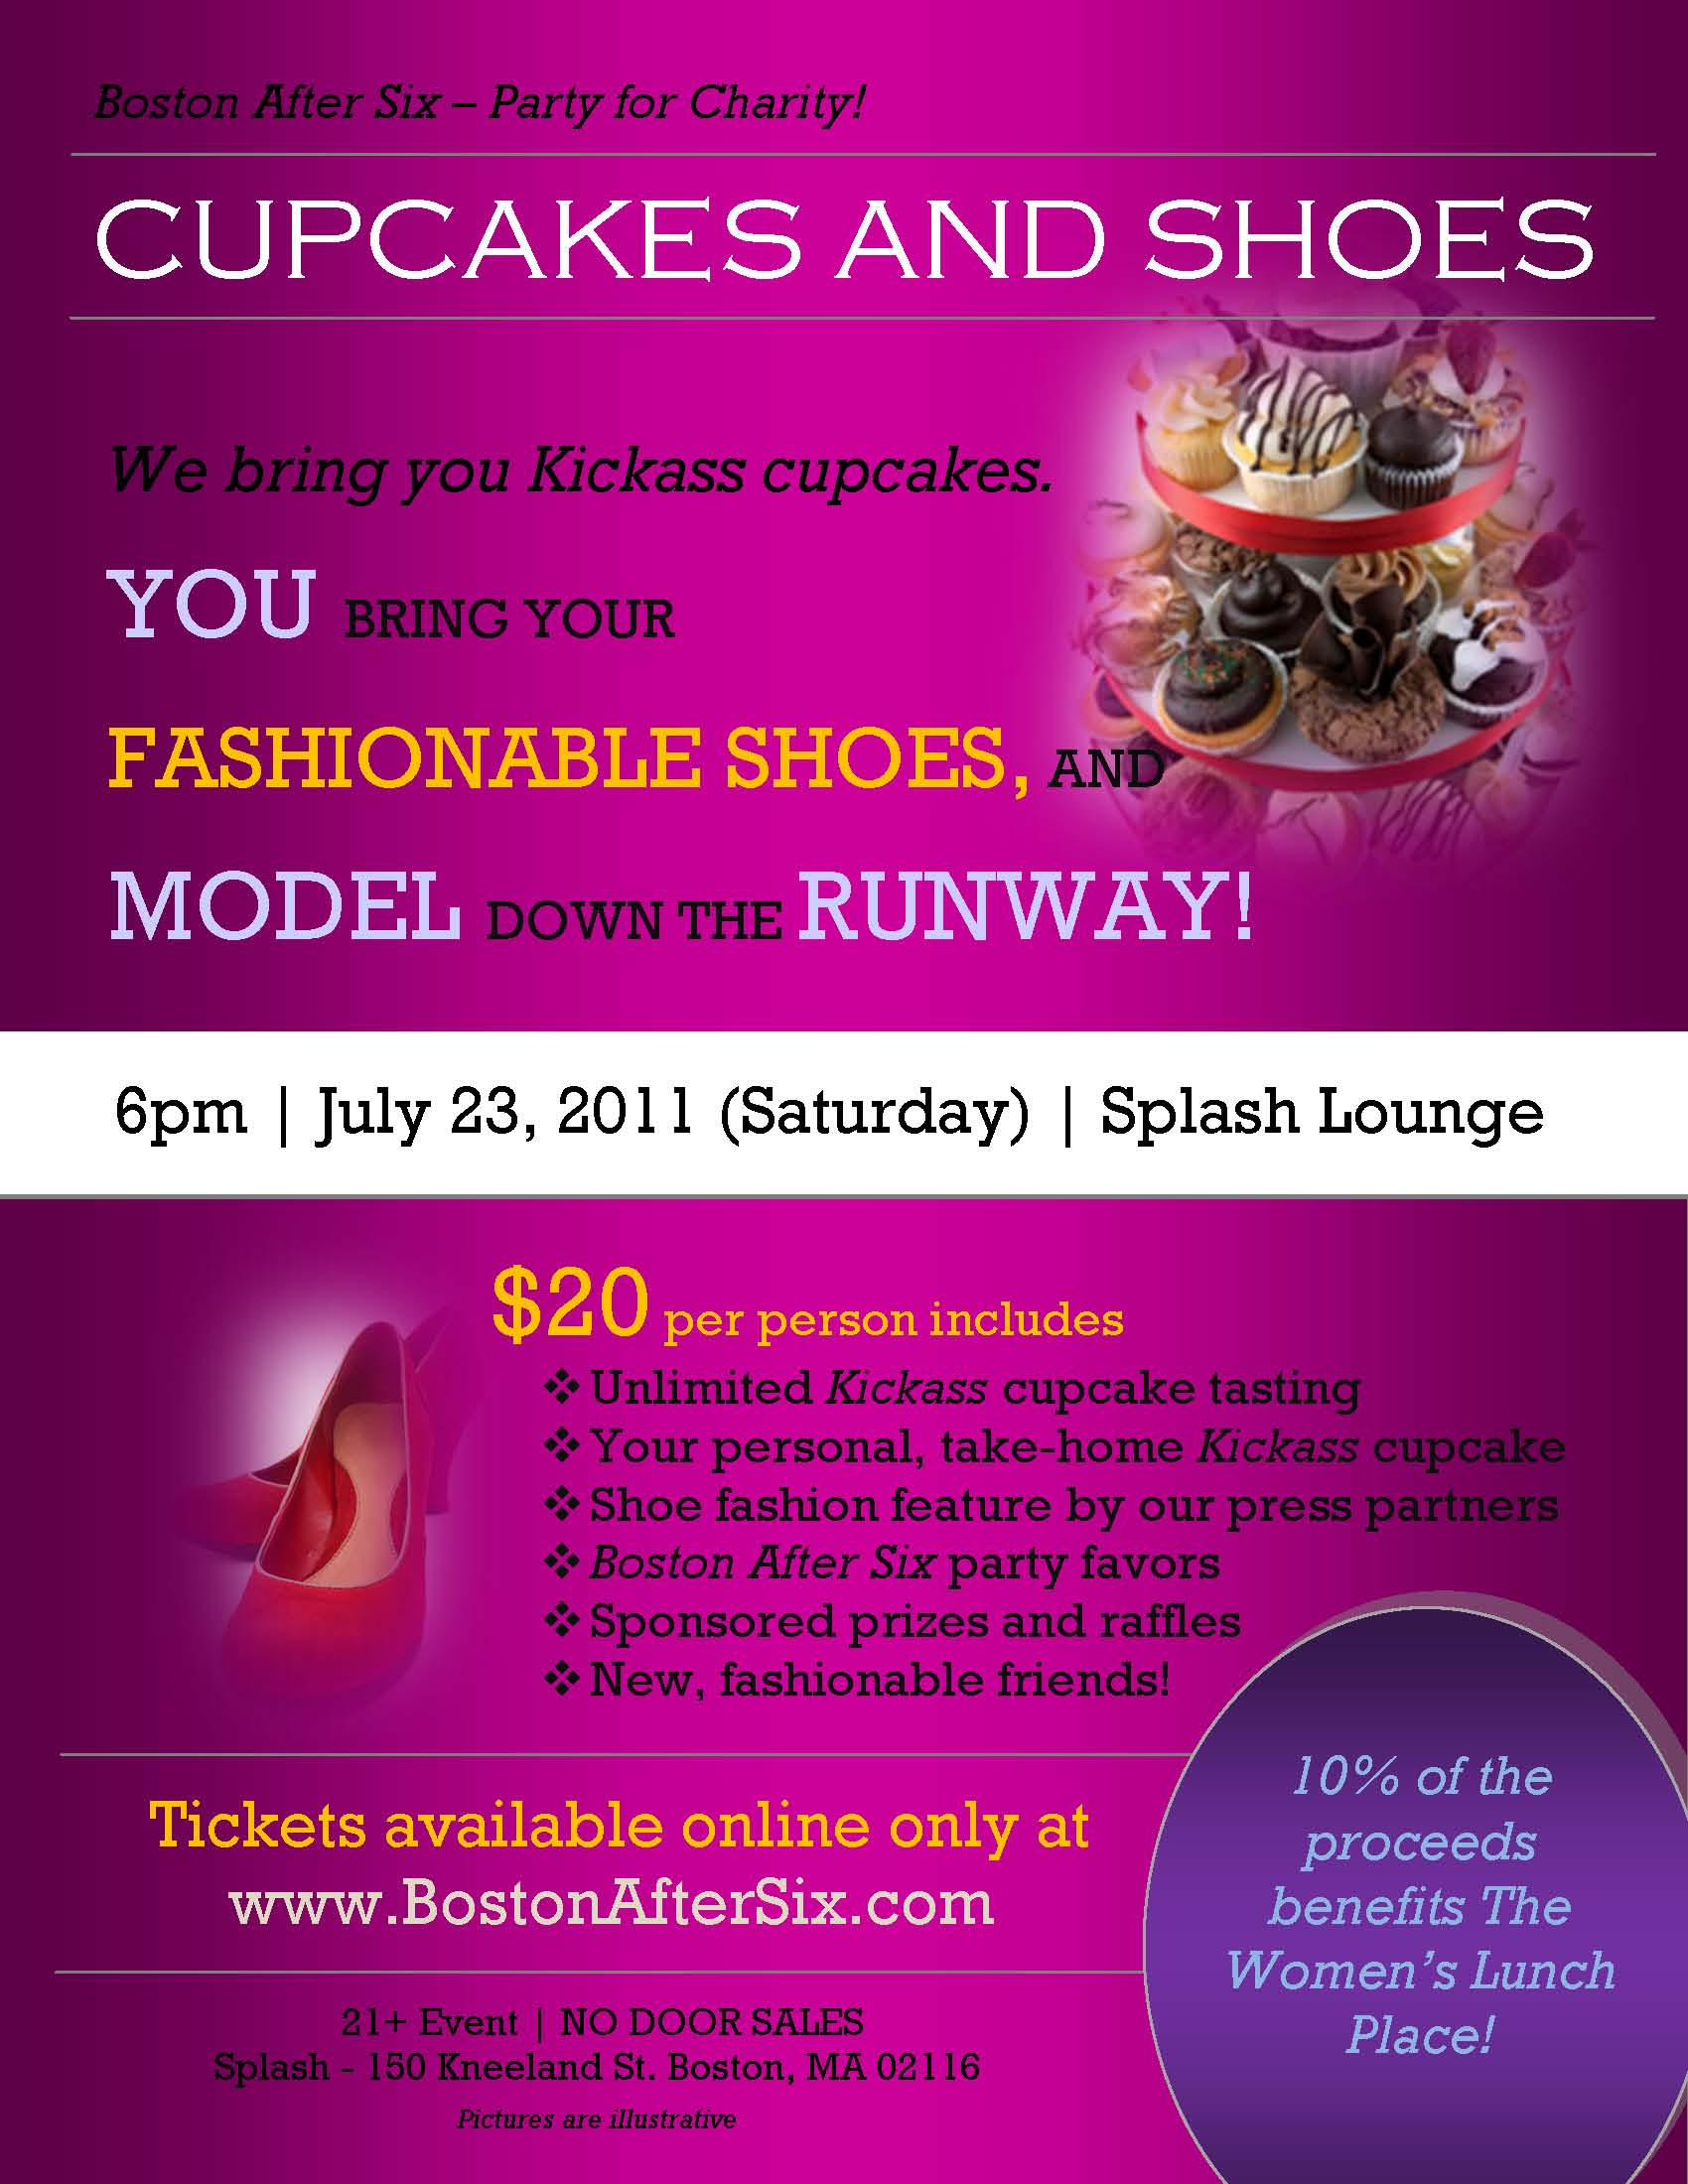 Poster - Party for Charity - CUPCAKES & SHOES Benefiting The Women's Lunch Place